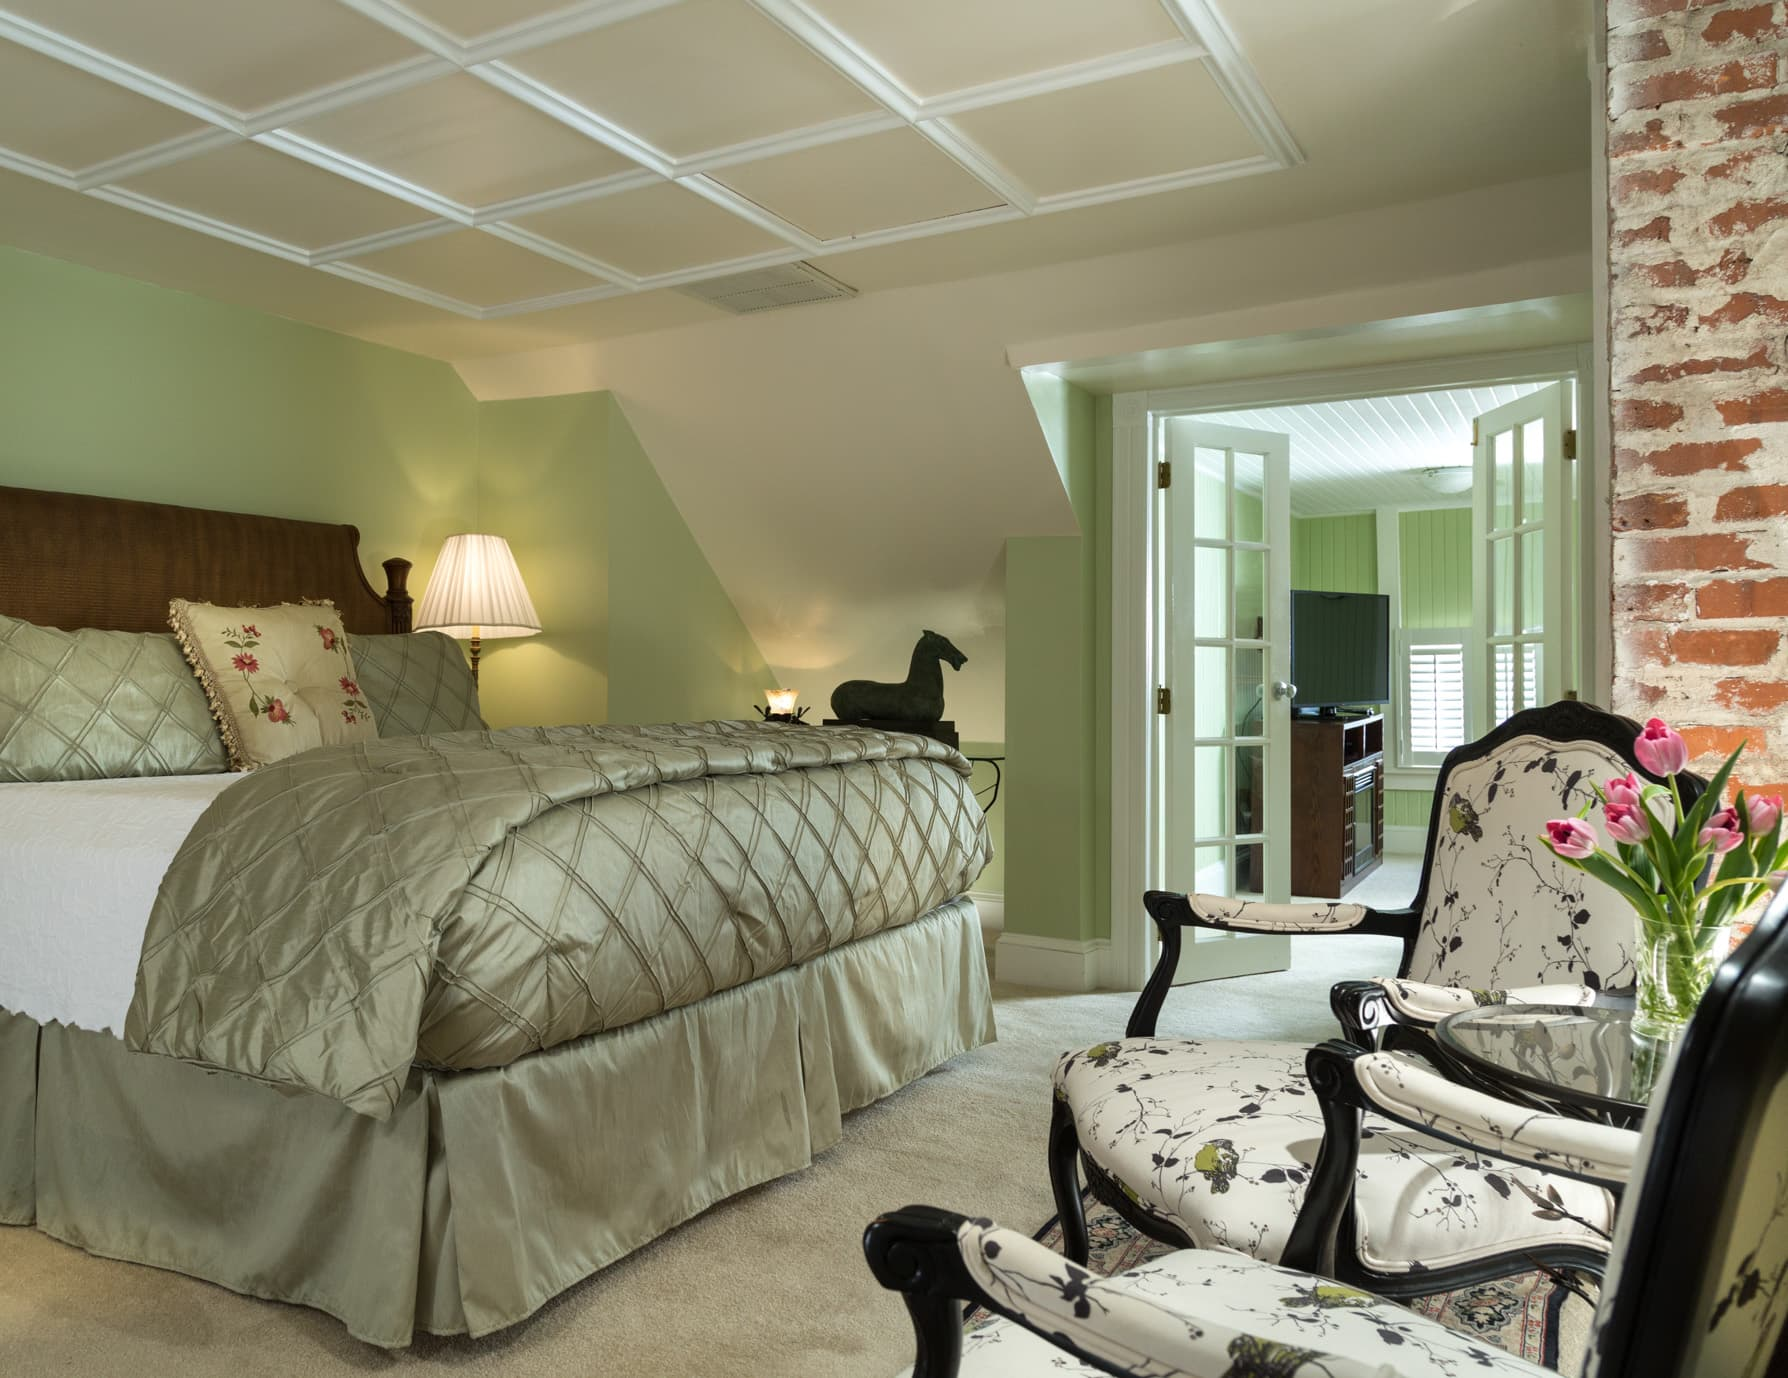 Spacious Green King Suite at Our Manteo, NC Bed and Breakfast